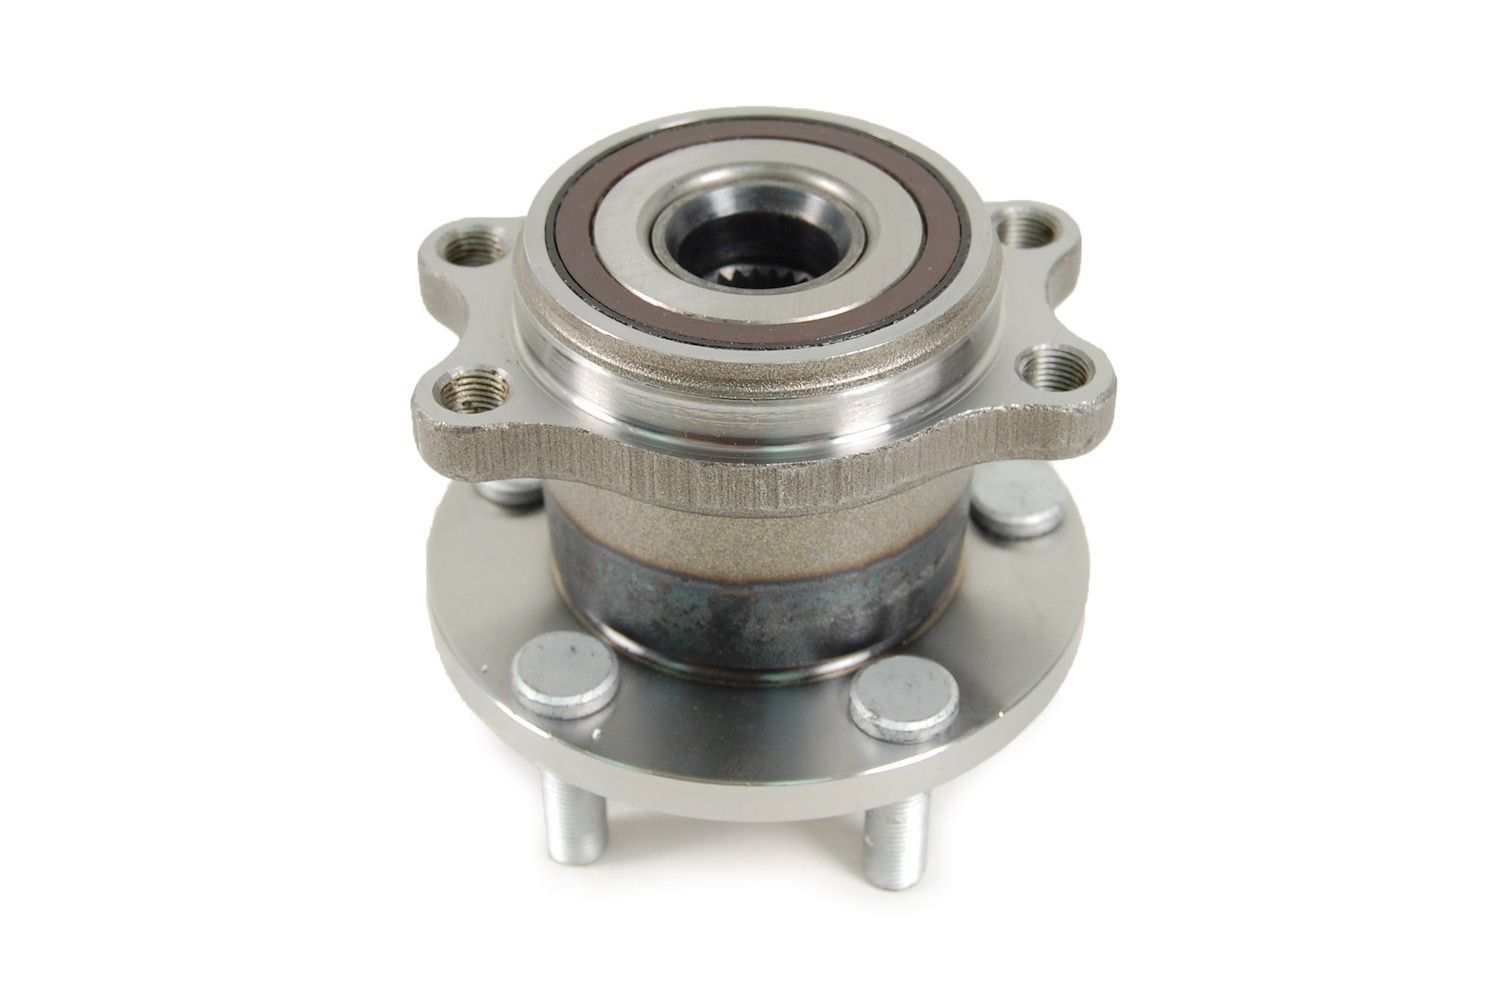 Subaru Outback Wheel Bearing And Hub Assembly Replacement Beck 2000 Axle Nut 2005 Rear Mevotech H512293